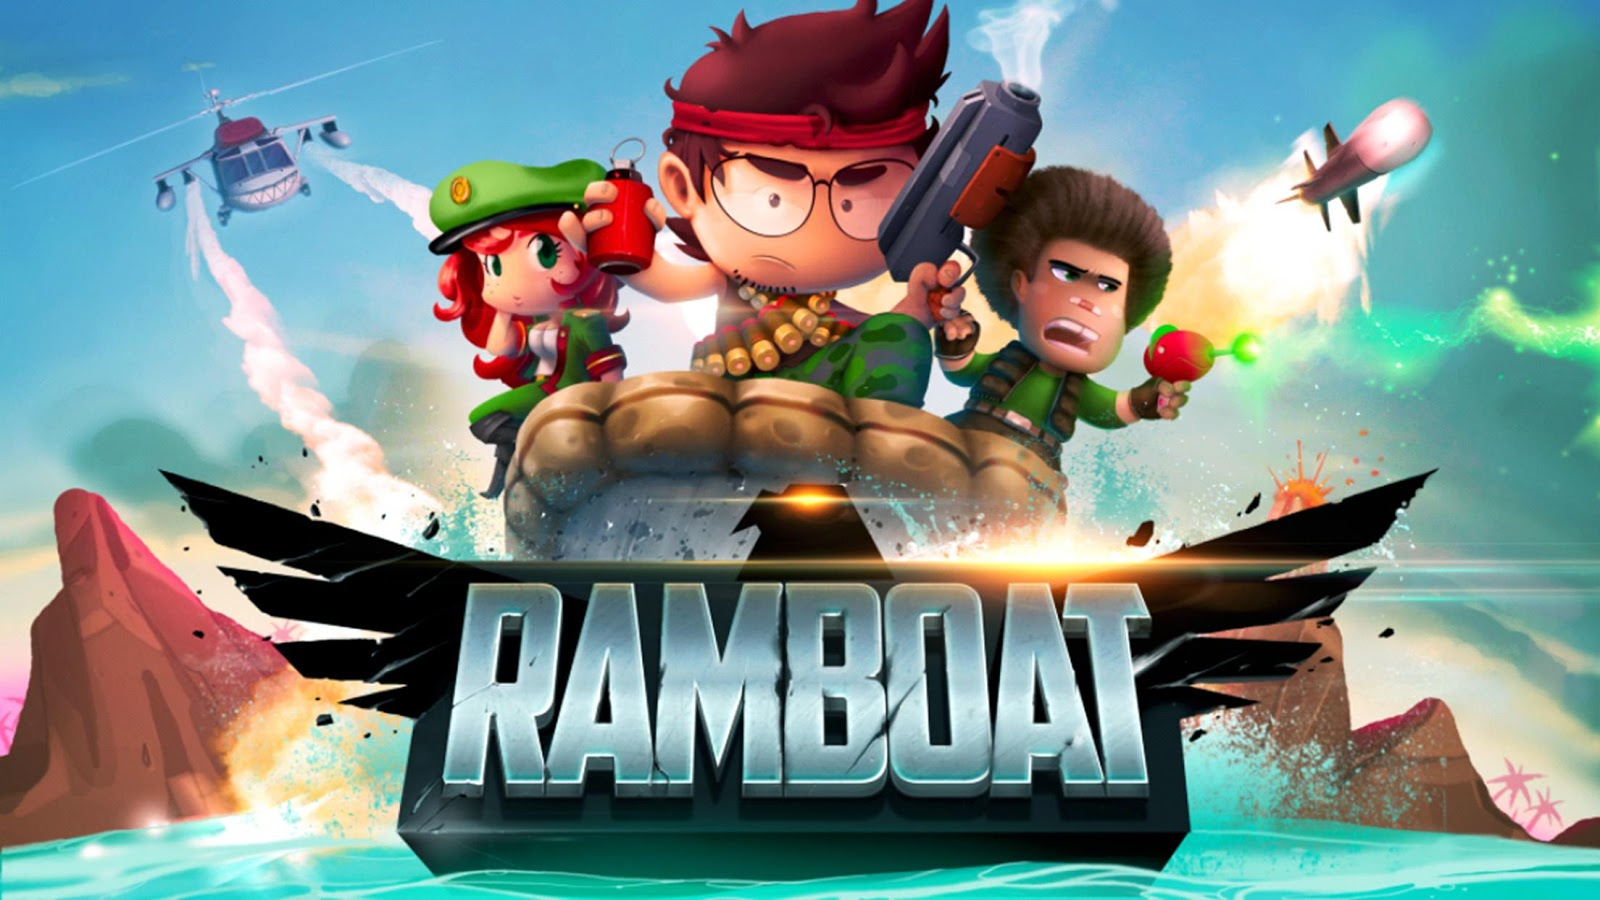 Ramboat: Shoot and Dash Screenshot 5